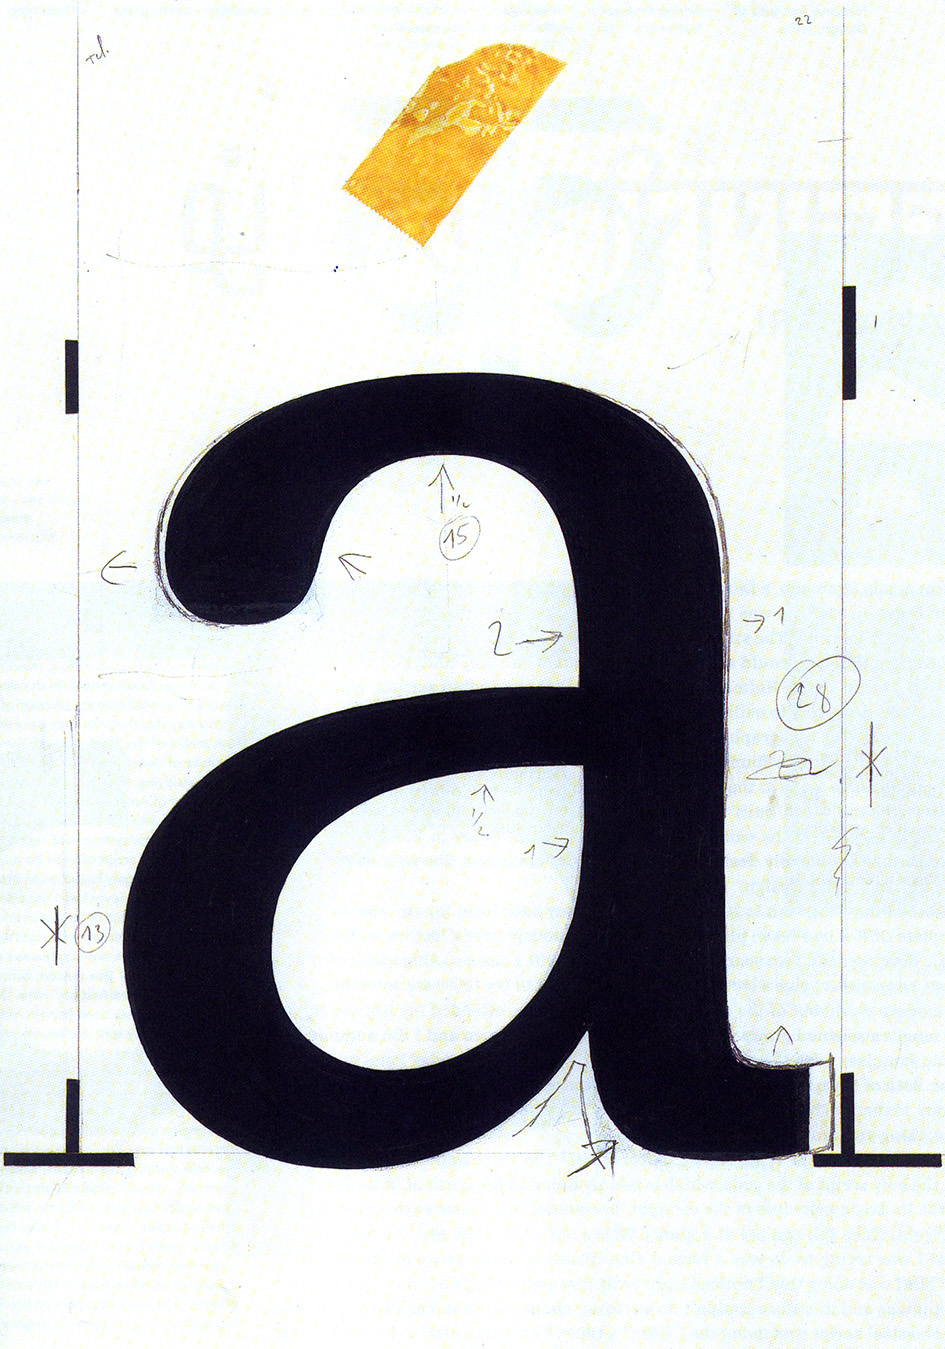 font example = a